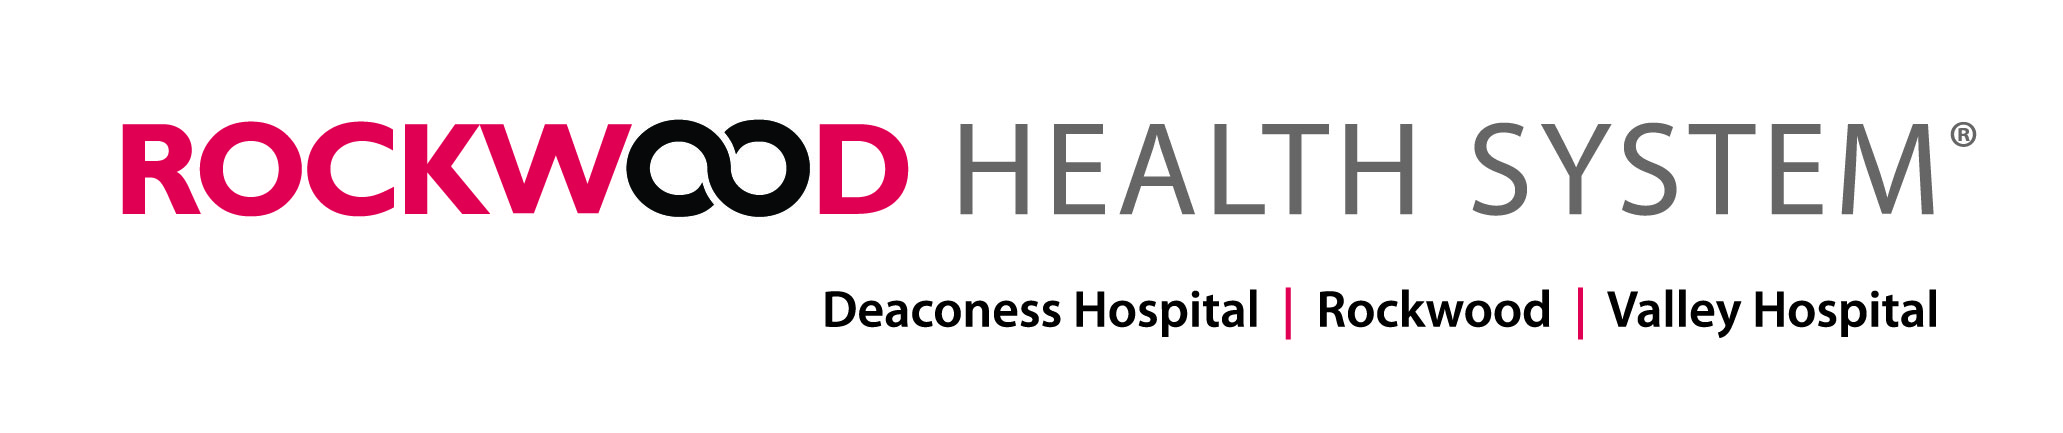 Rockwood Health System: Deaconess Hospital, Rockwood Clinic, Valley Hospital